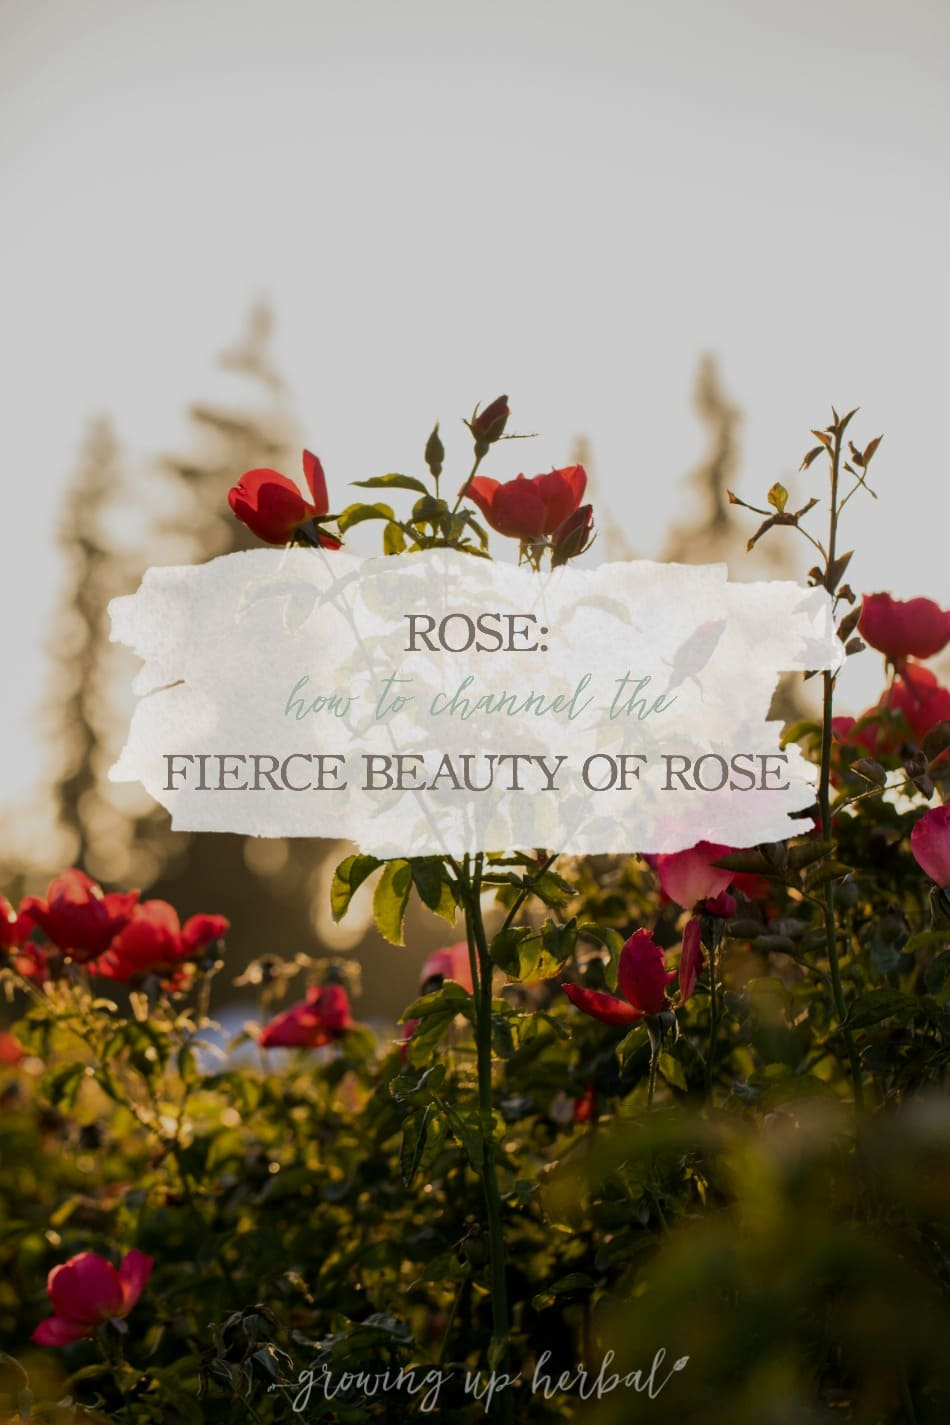 Rose: How To Channel the Fierce Beauty of Rose